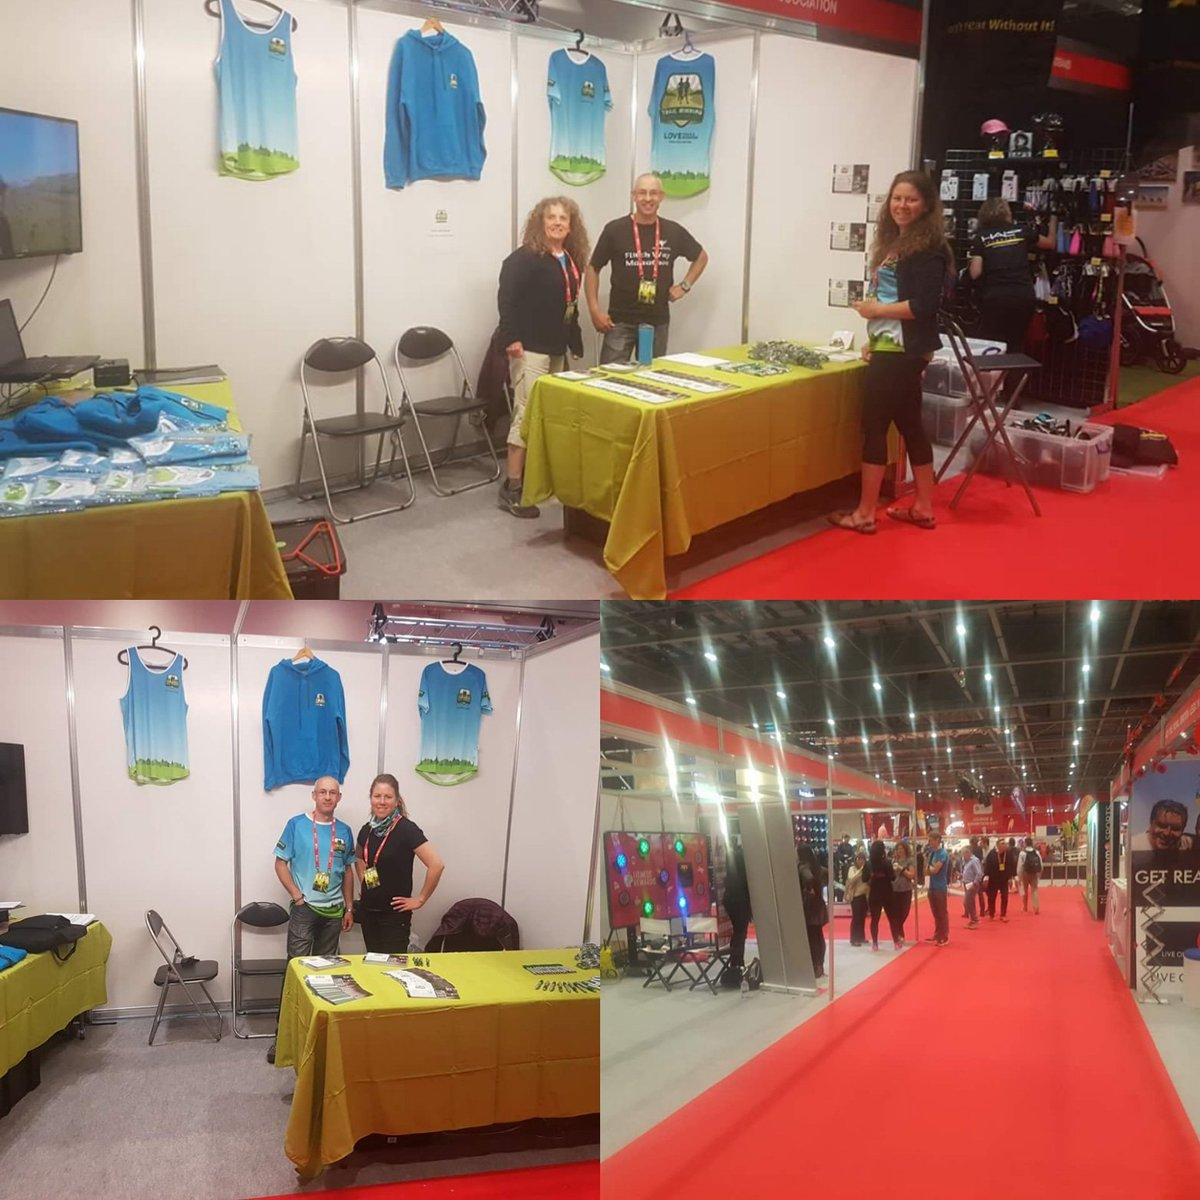 We will be at stand 534 at the vlm expo this week. Come and say hi and join or buy some kit.